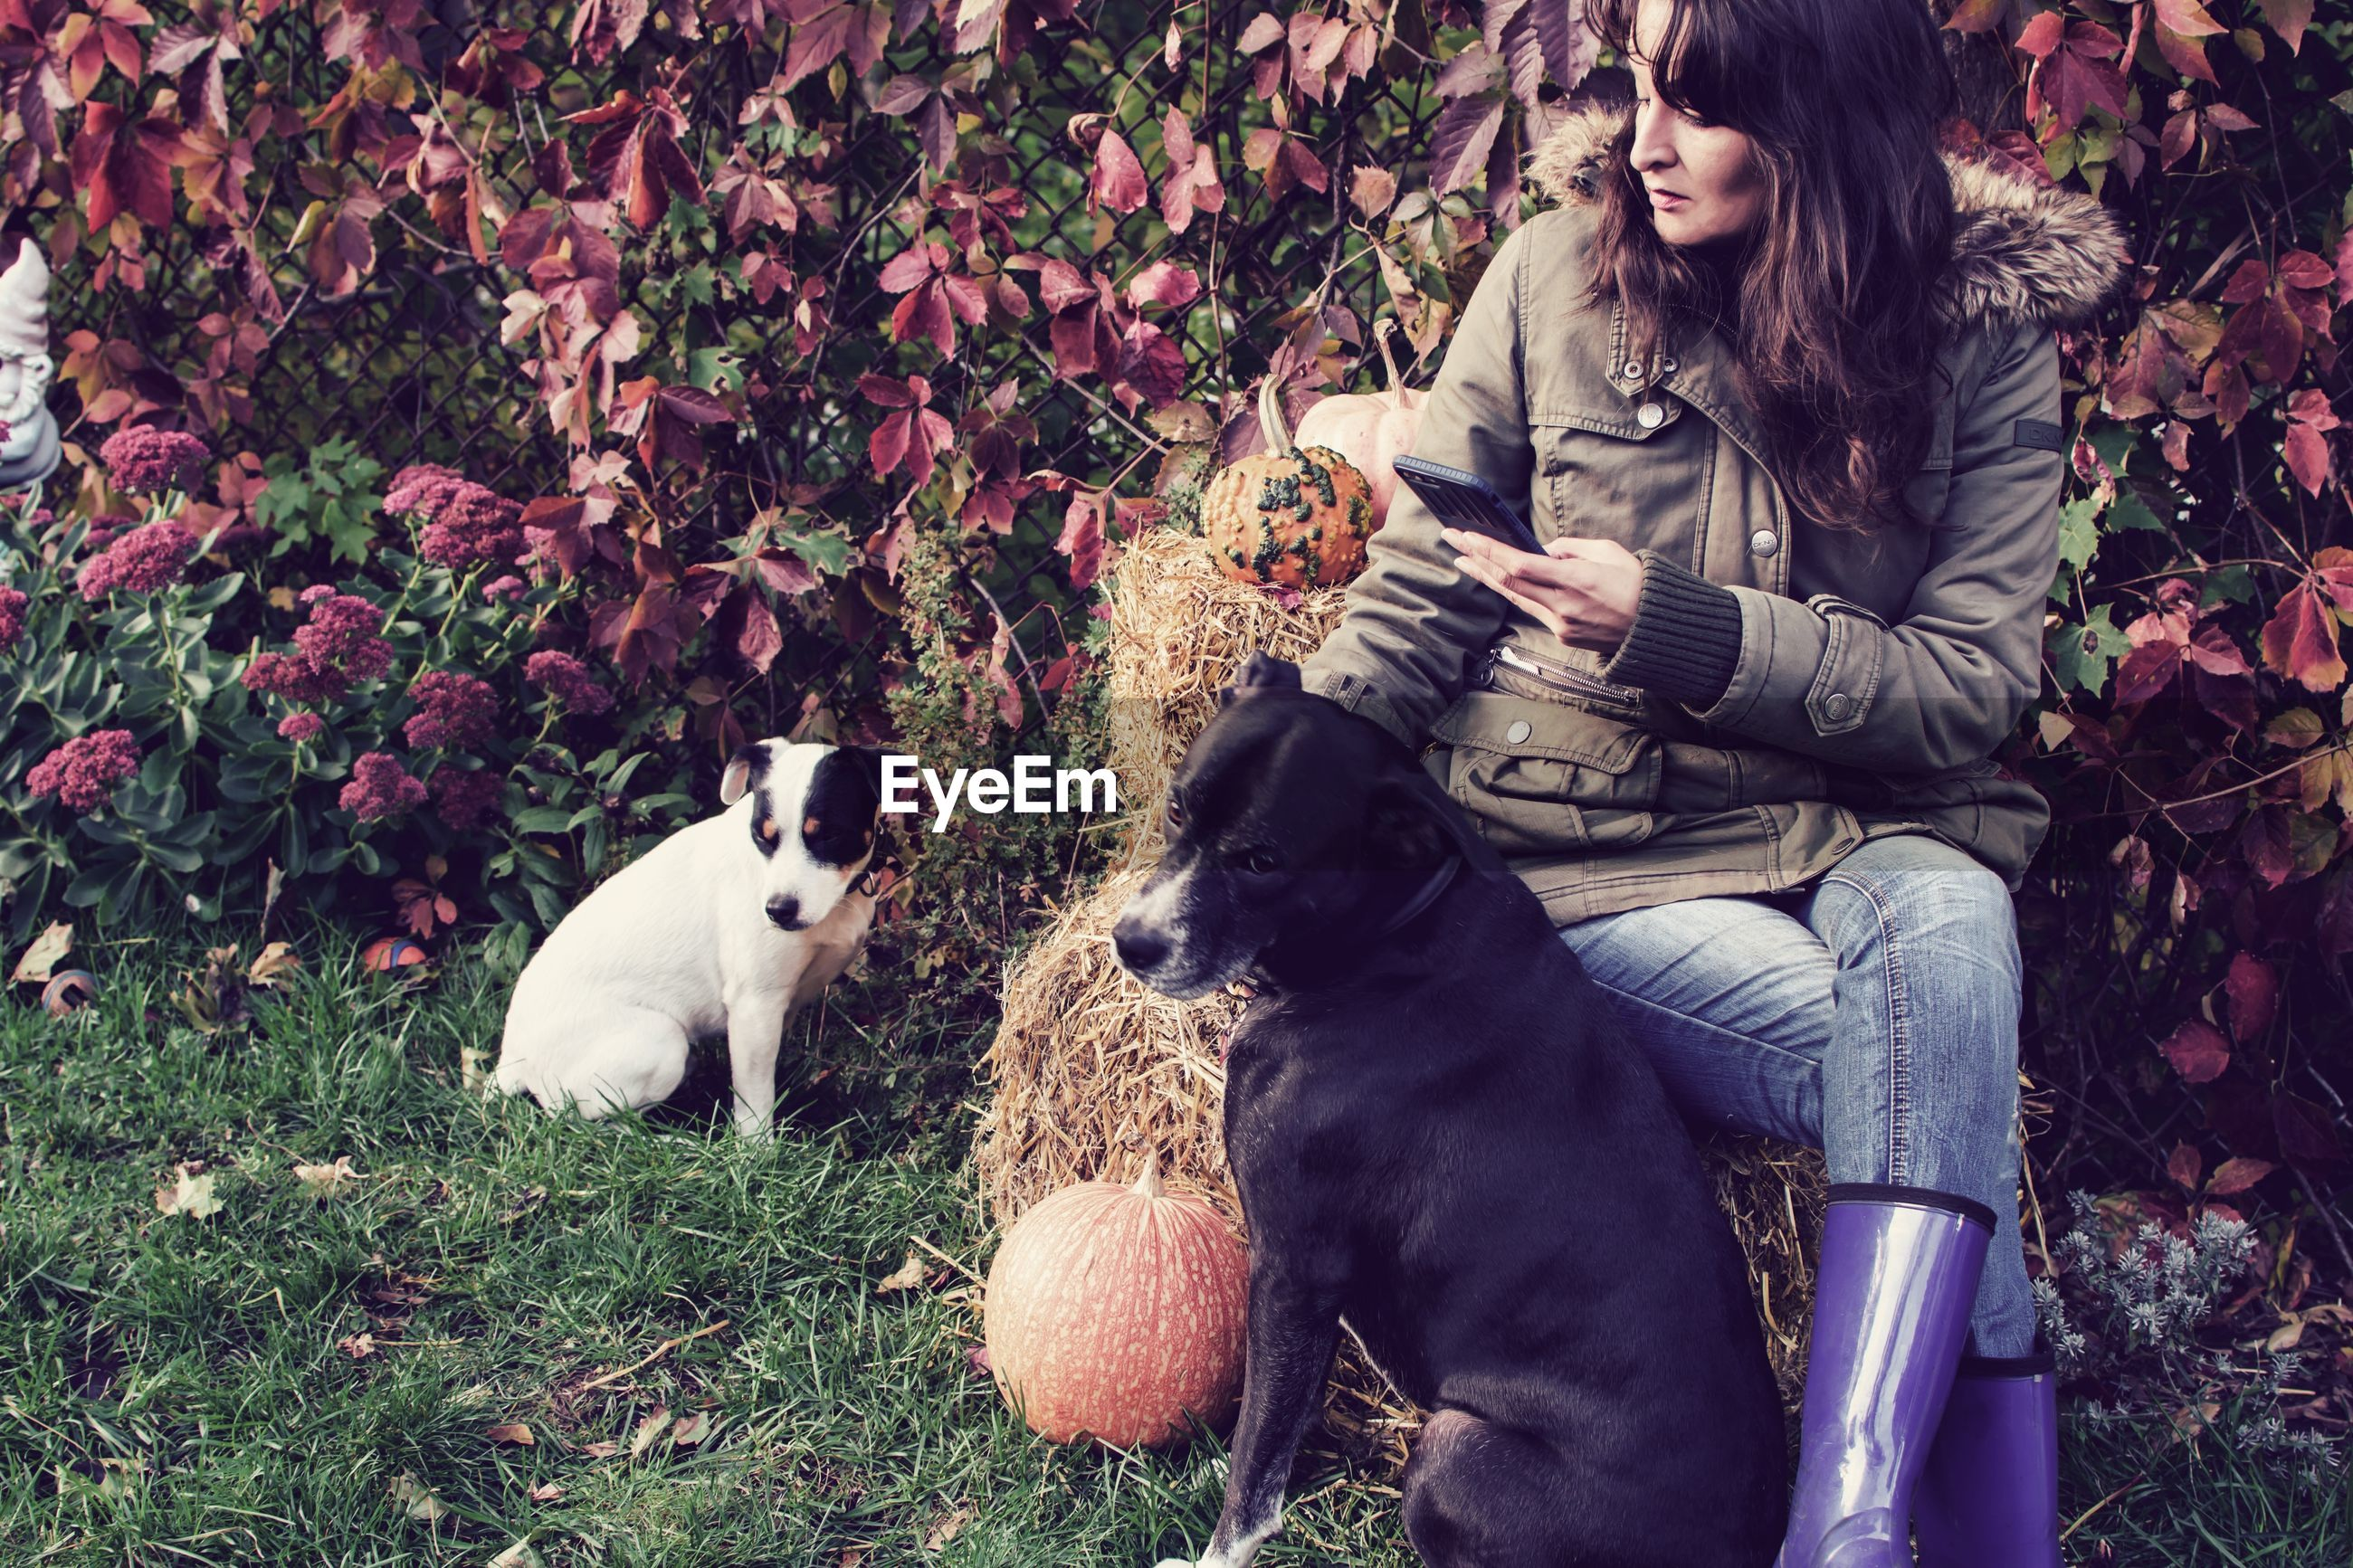 Young woman with dogs using mobile phone while sitting against plants